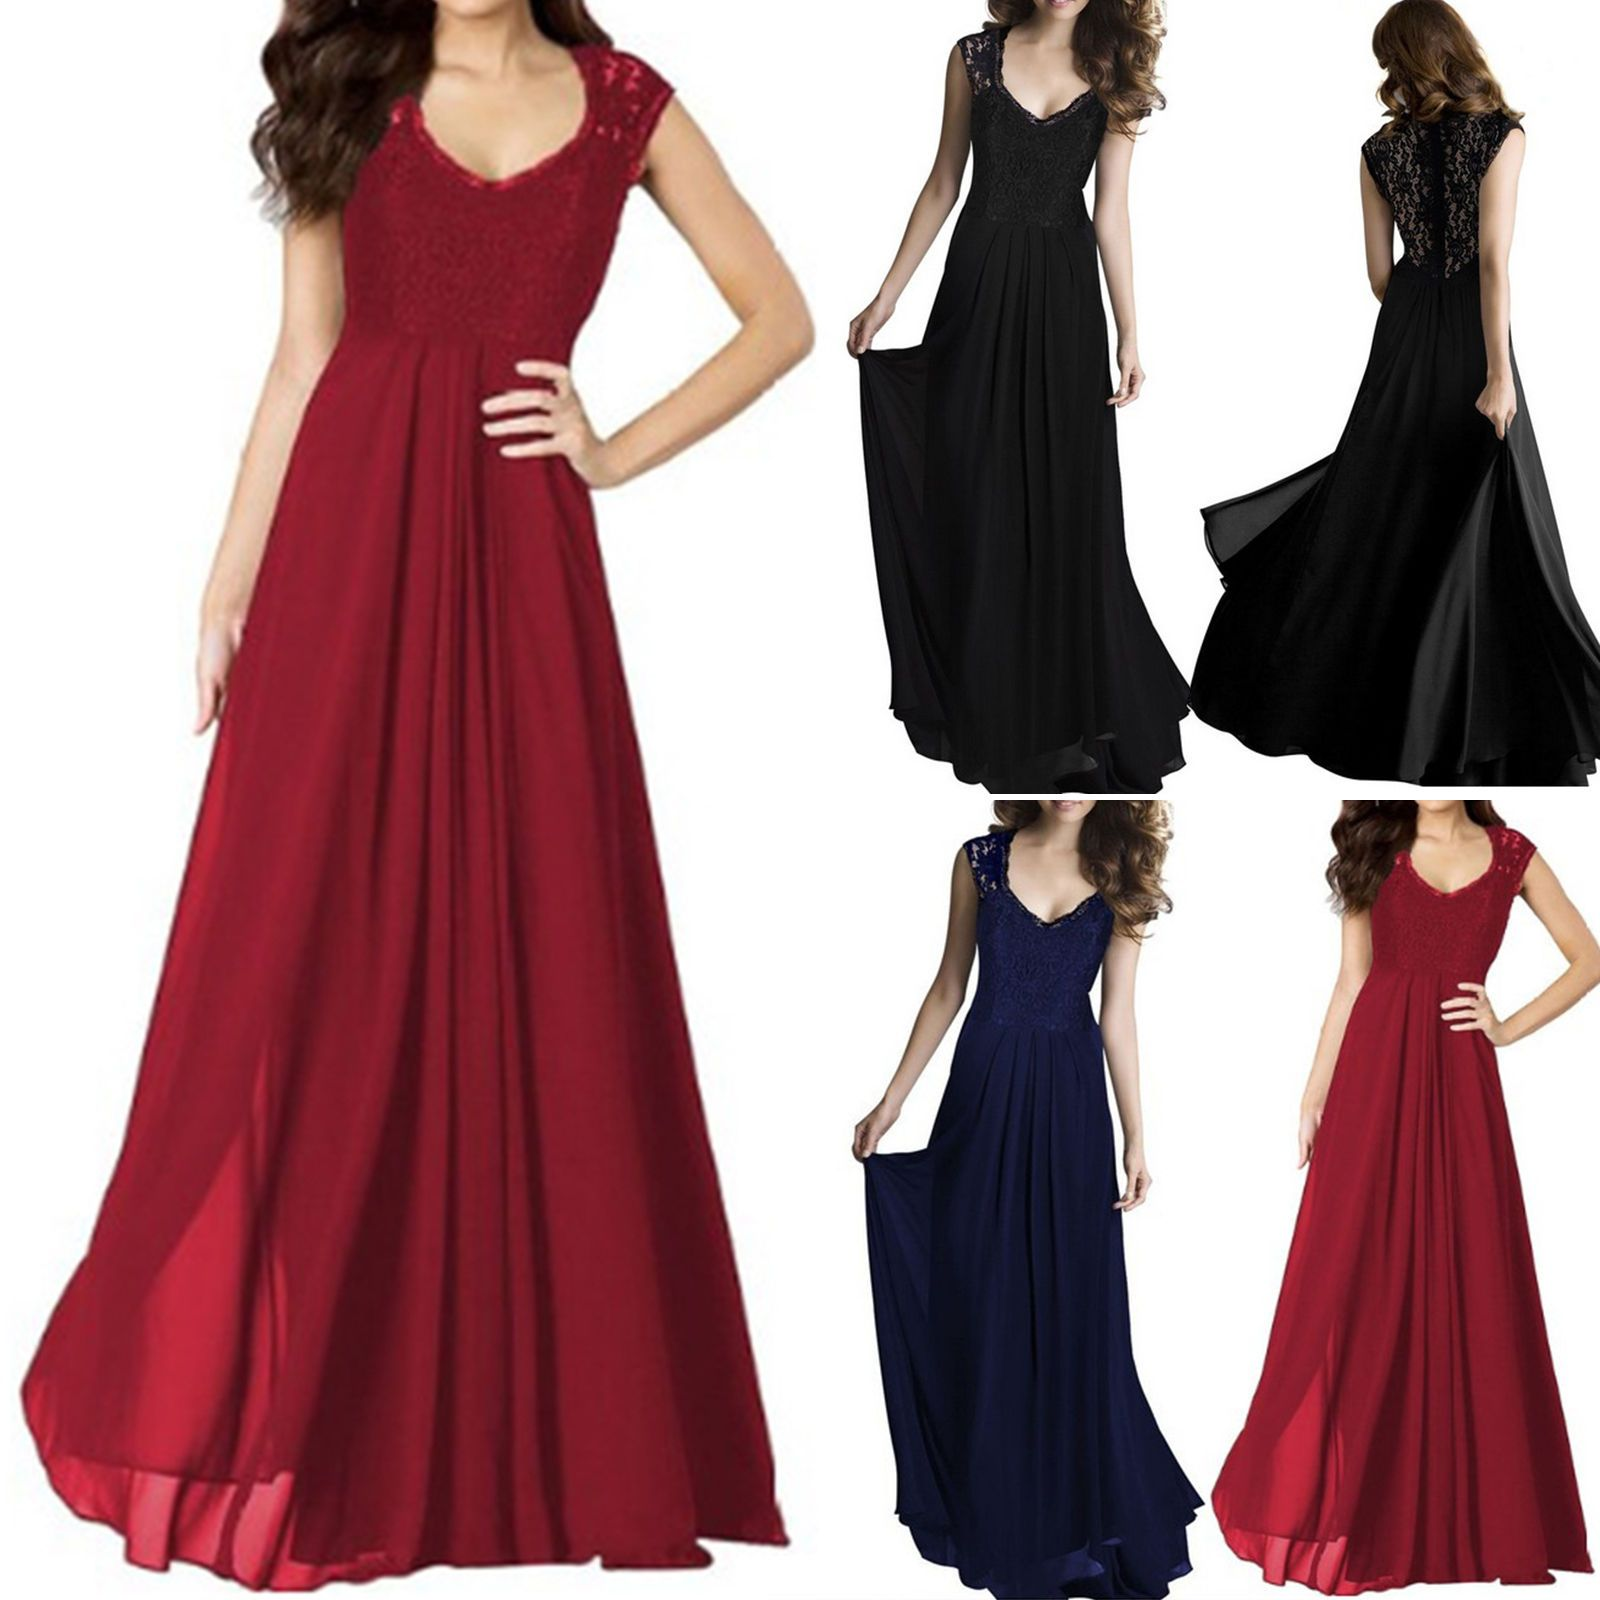 Awesome women chiffon formal party prom lace evening gown ballgown